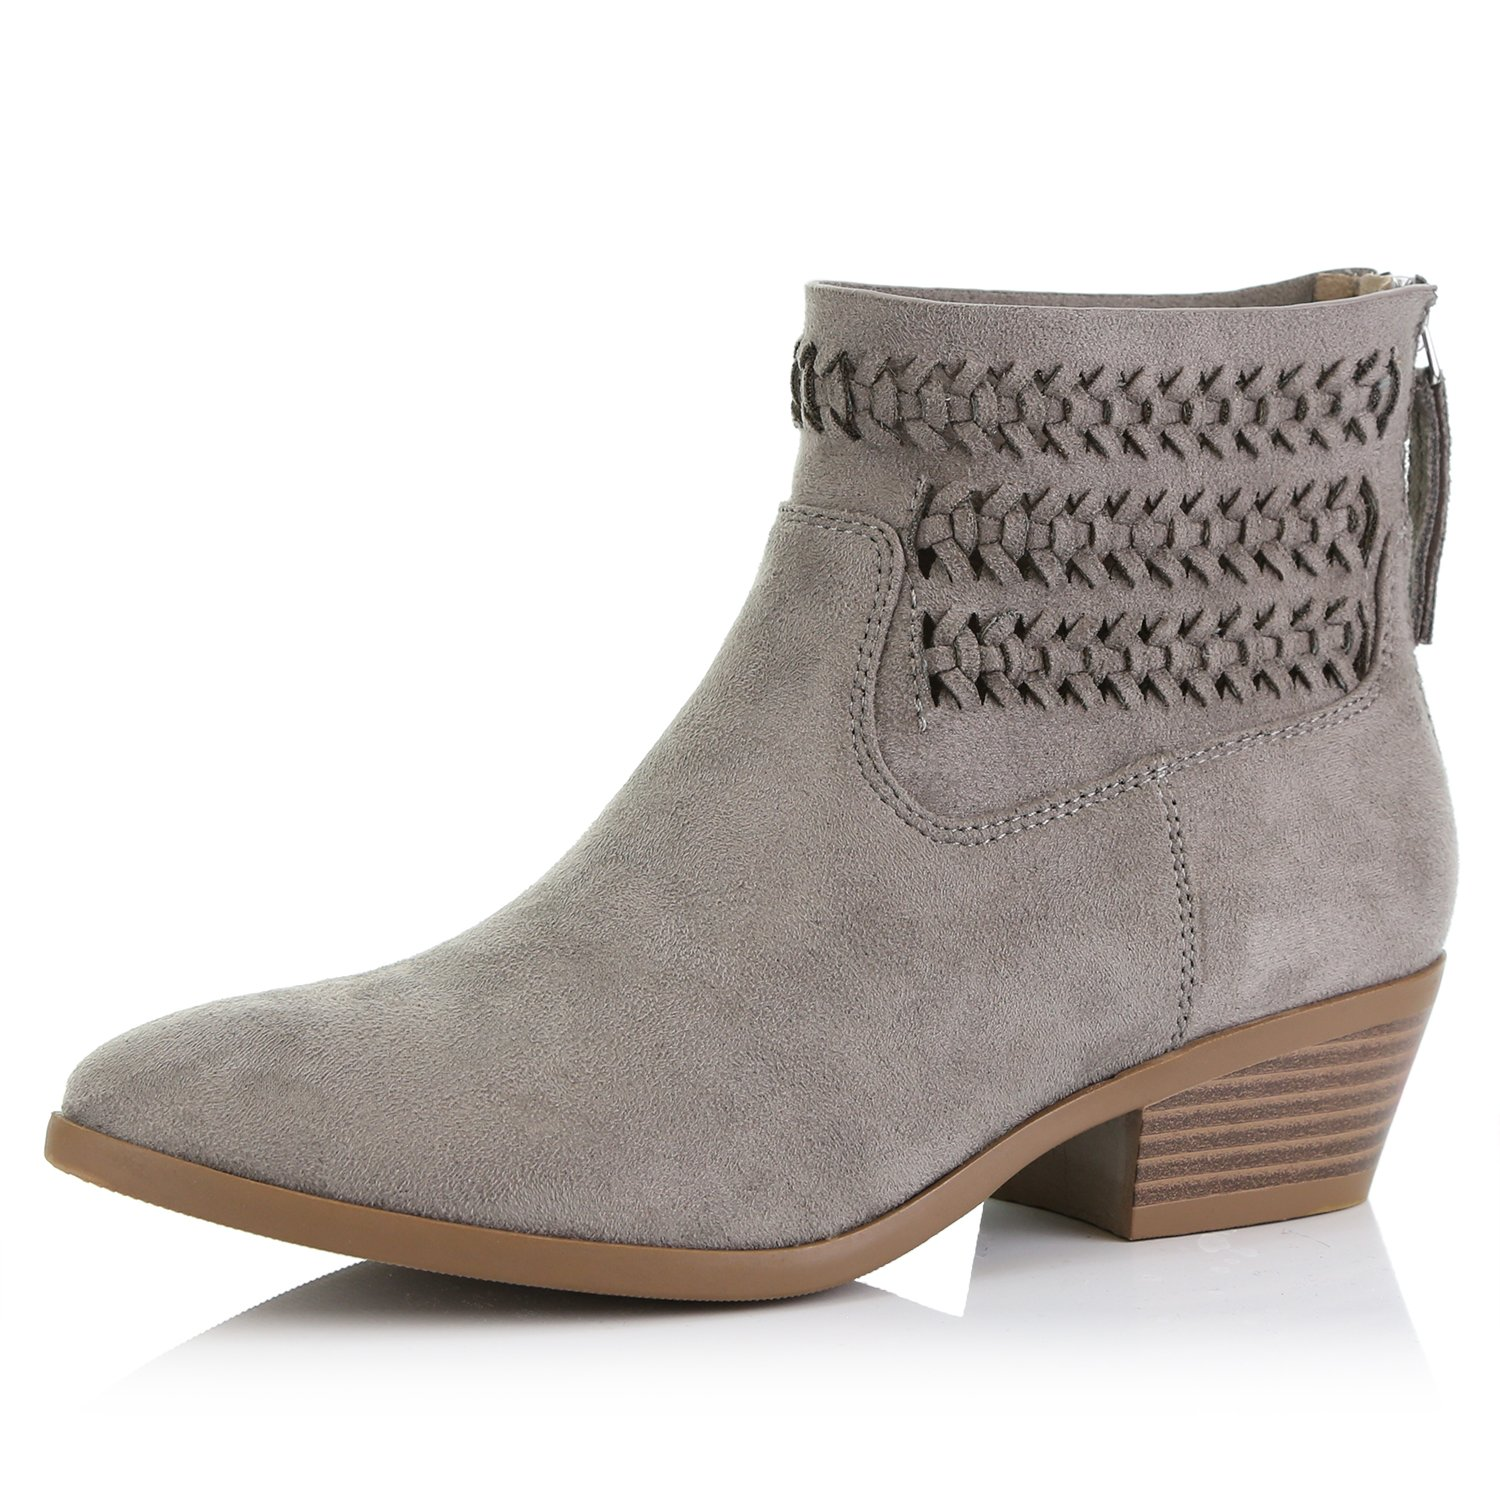 DailyShoes Women's Western Cowboy Bootie - Ultra Comfortable and Soft Lining Slip on Low Heel Cowgirl Closed Pointed Toe Boot, Grey Suede, 8 B(M) US